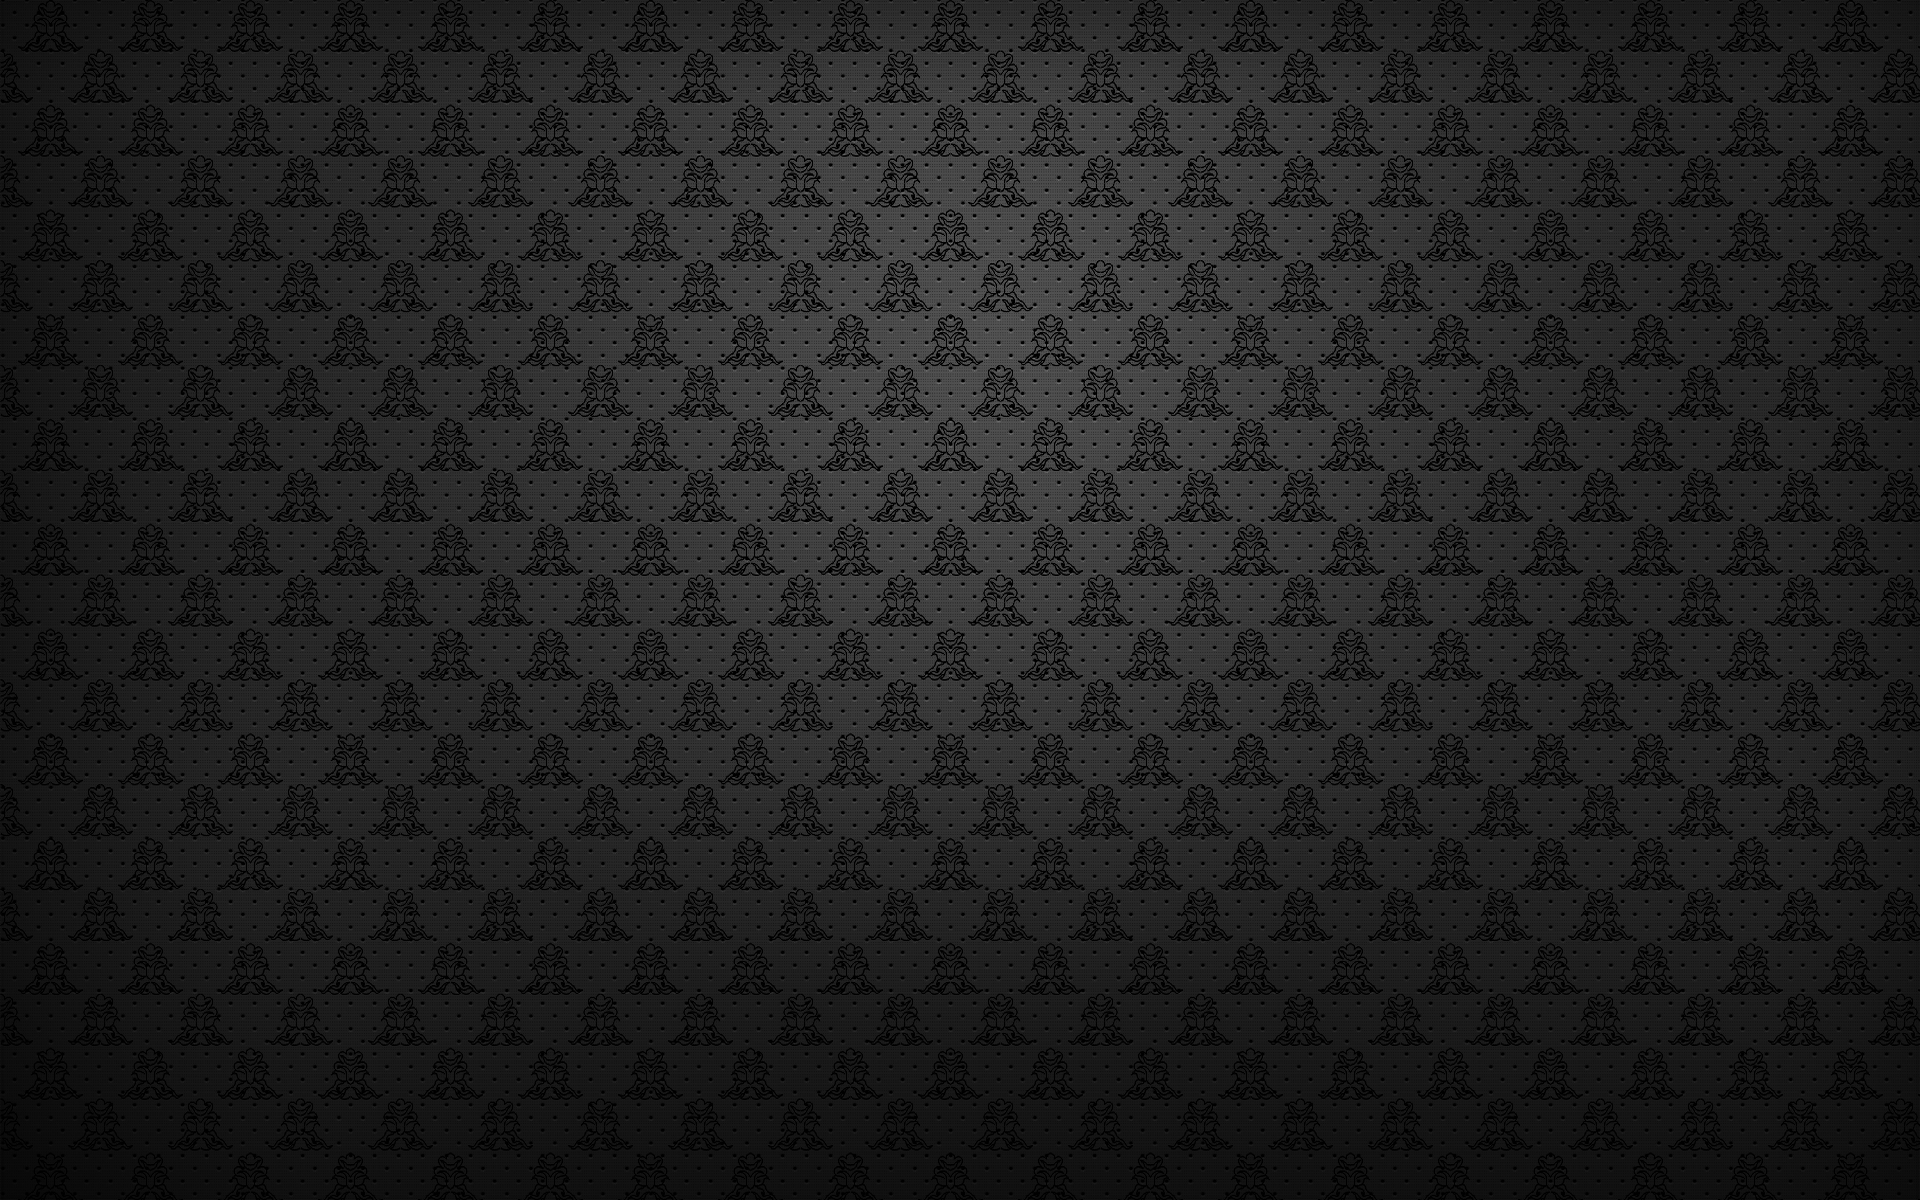 ... Black Elegant Wallpaper ...